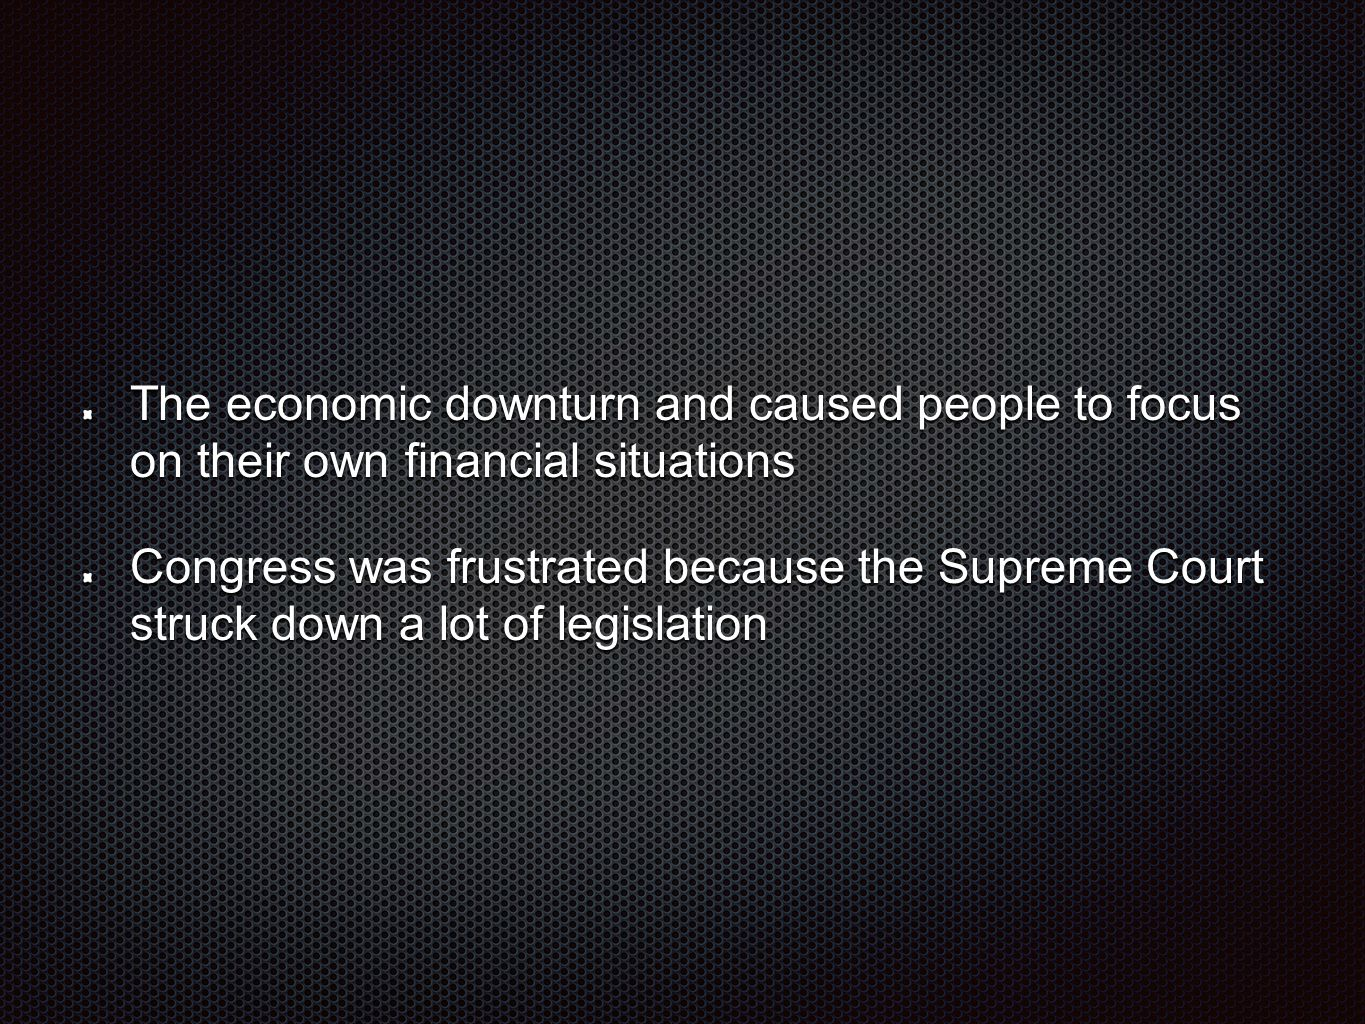 The economic downturn and caused people to focus on their own financial situations Congress was frustrated because the Supreme Court struck down a lot of legislation